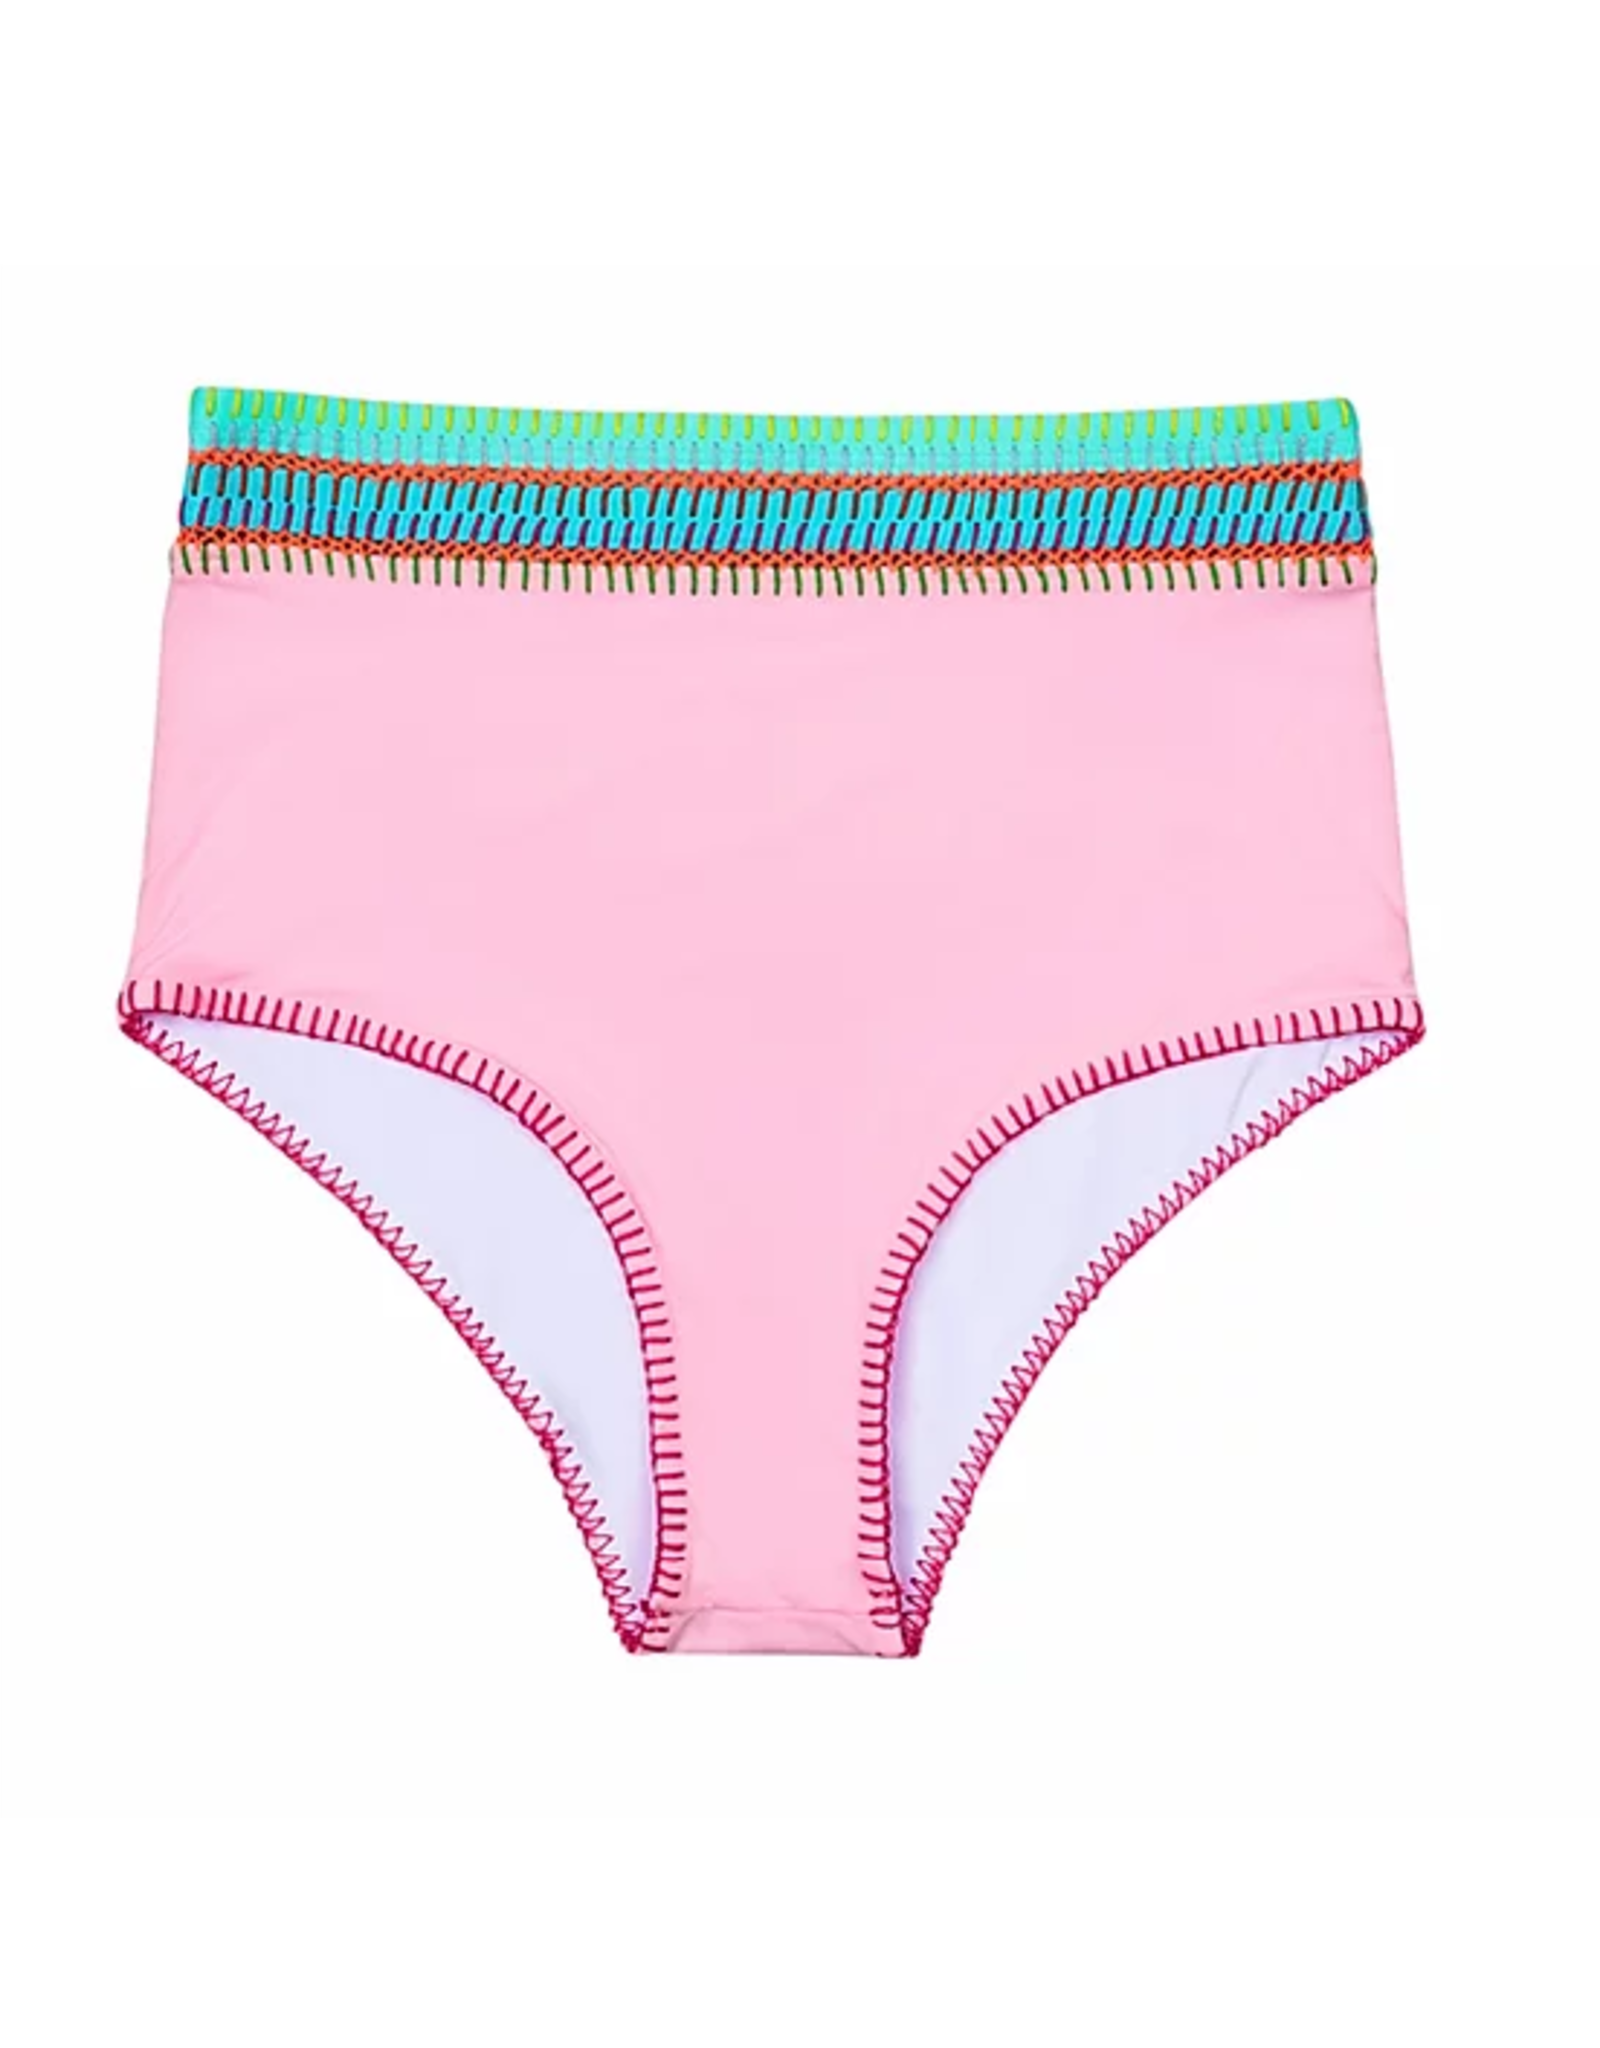 Benedetta California Dreaming Hi-Rise Bottom